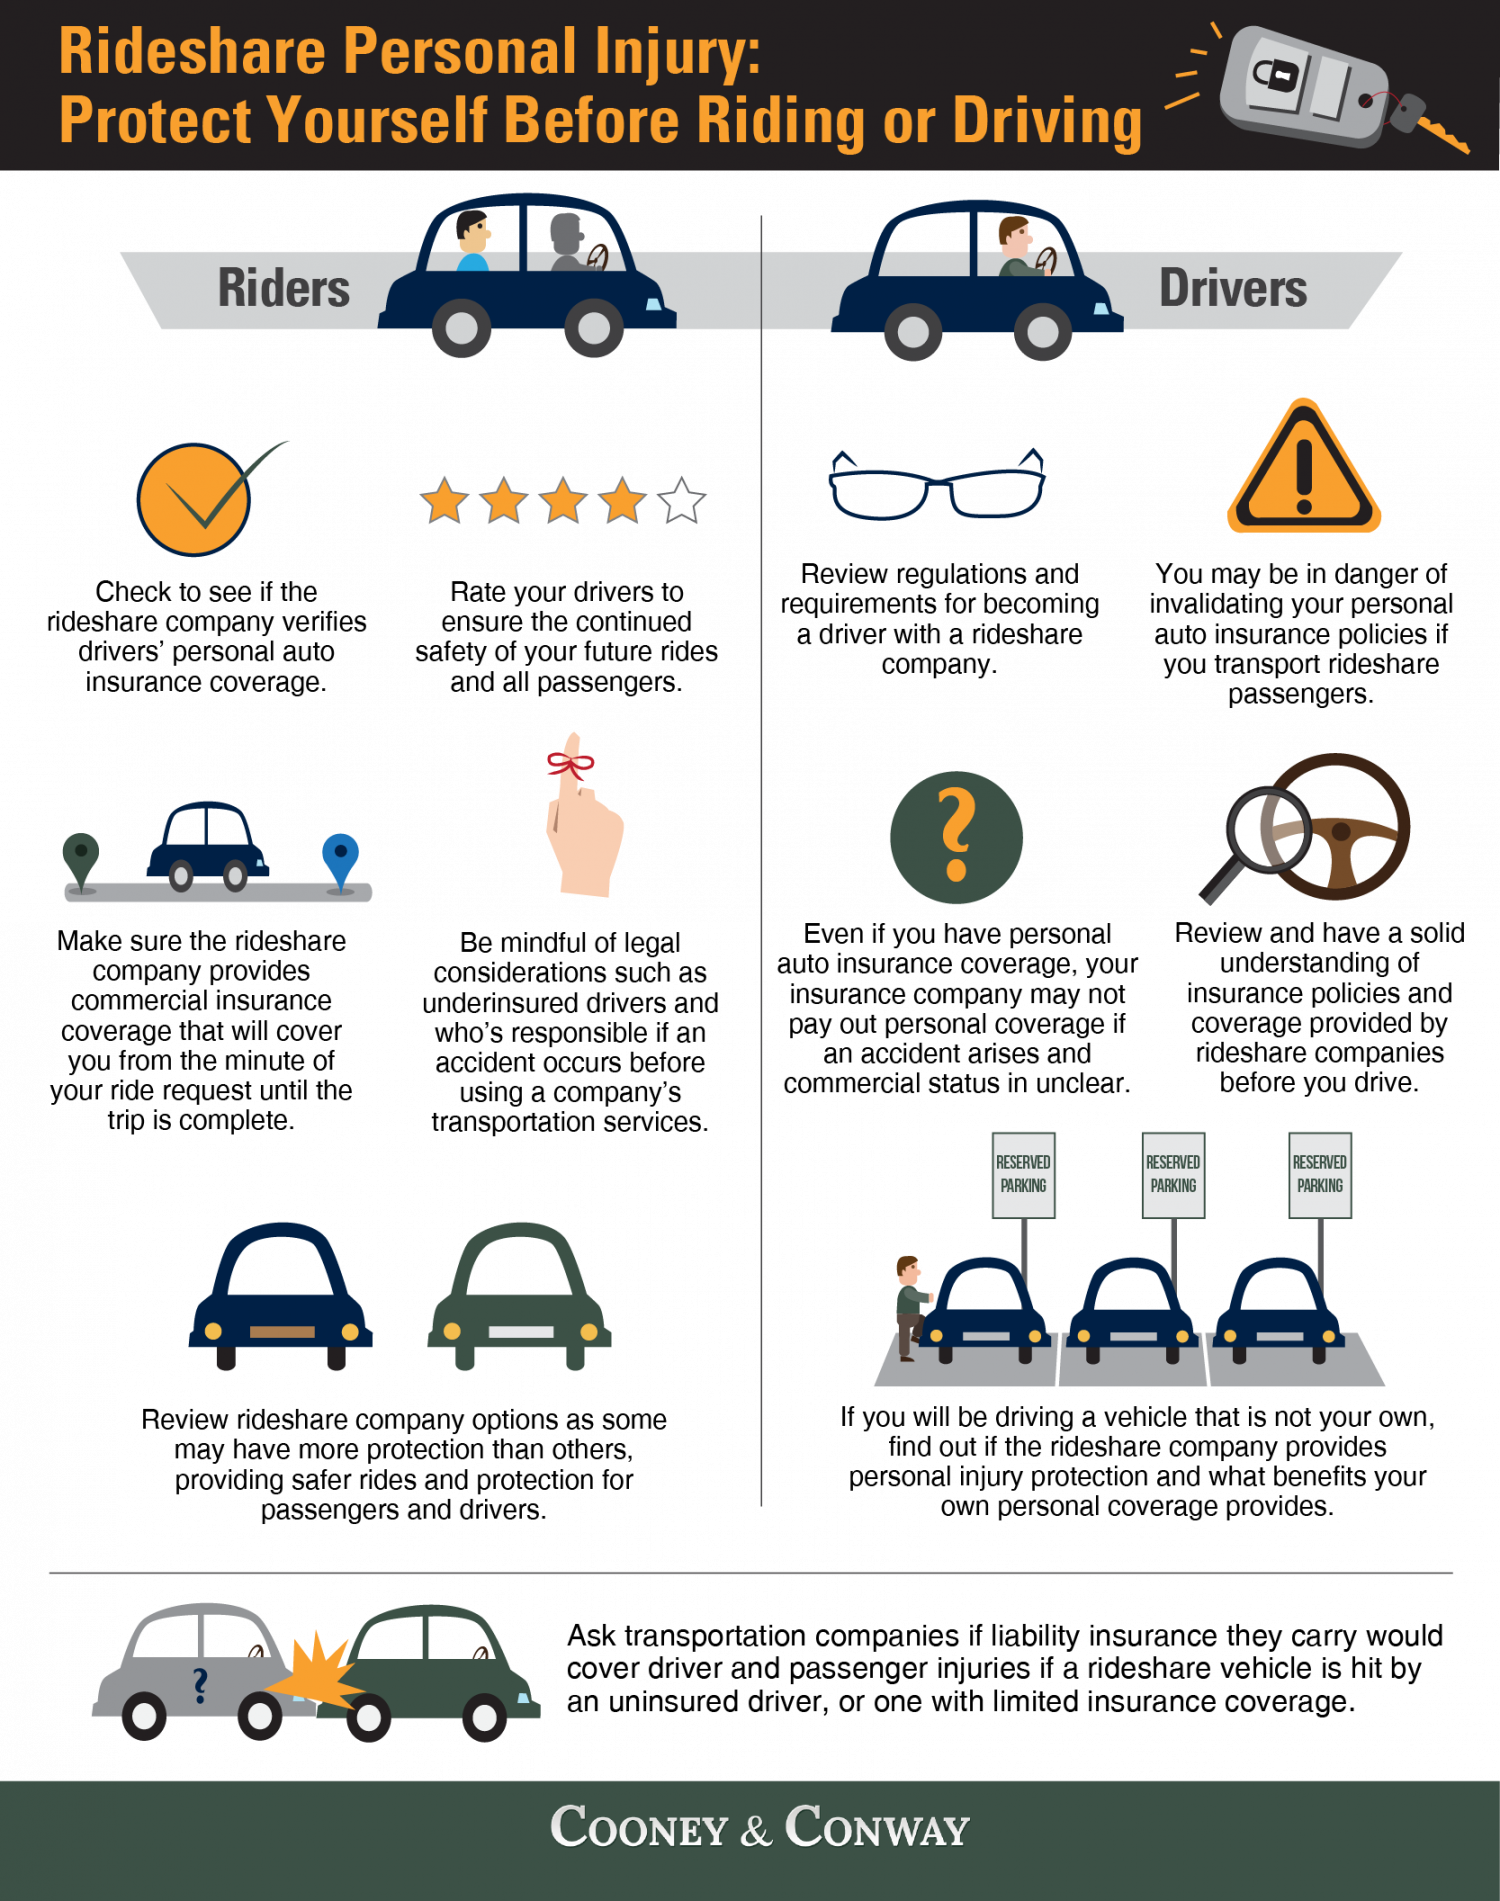 Rideshare Personal Injury: Protect Yourself Before Riding or Driving Infographic